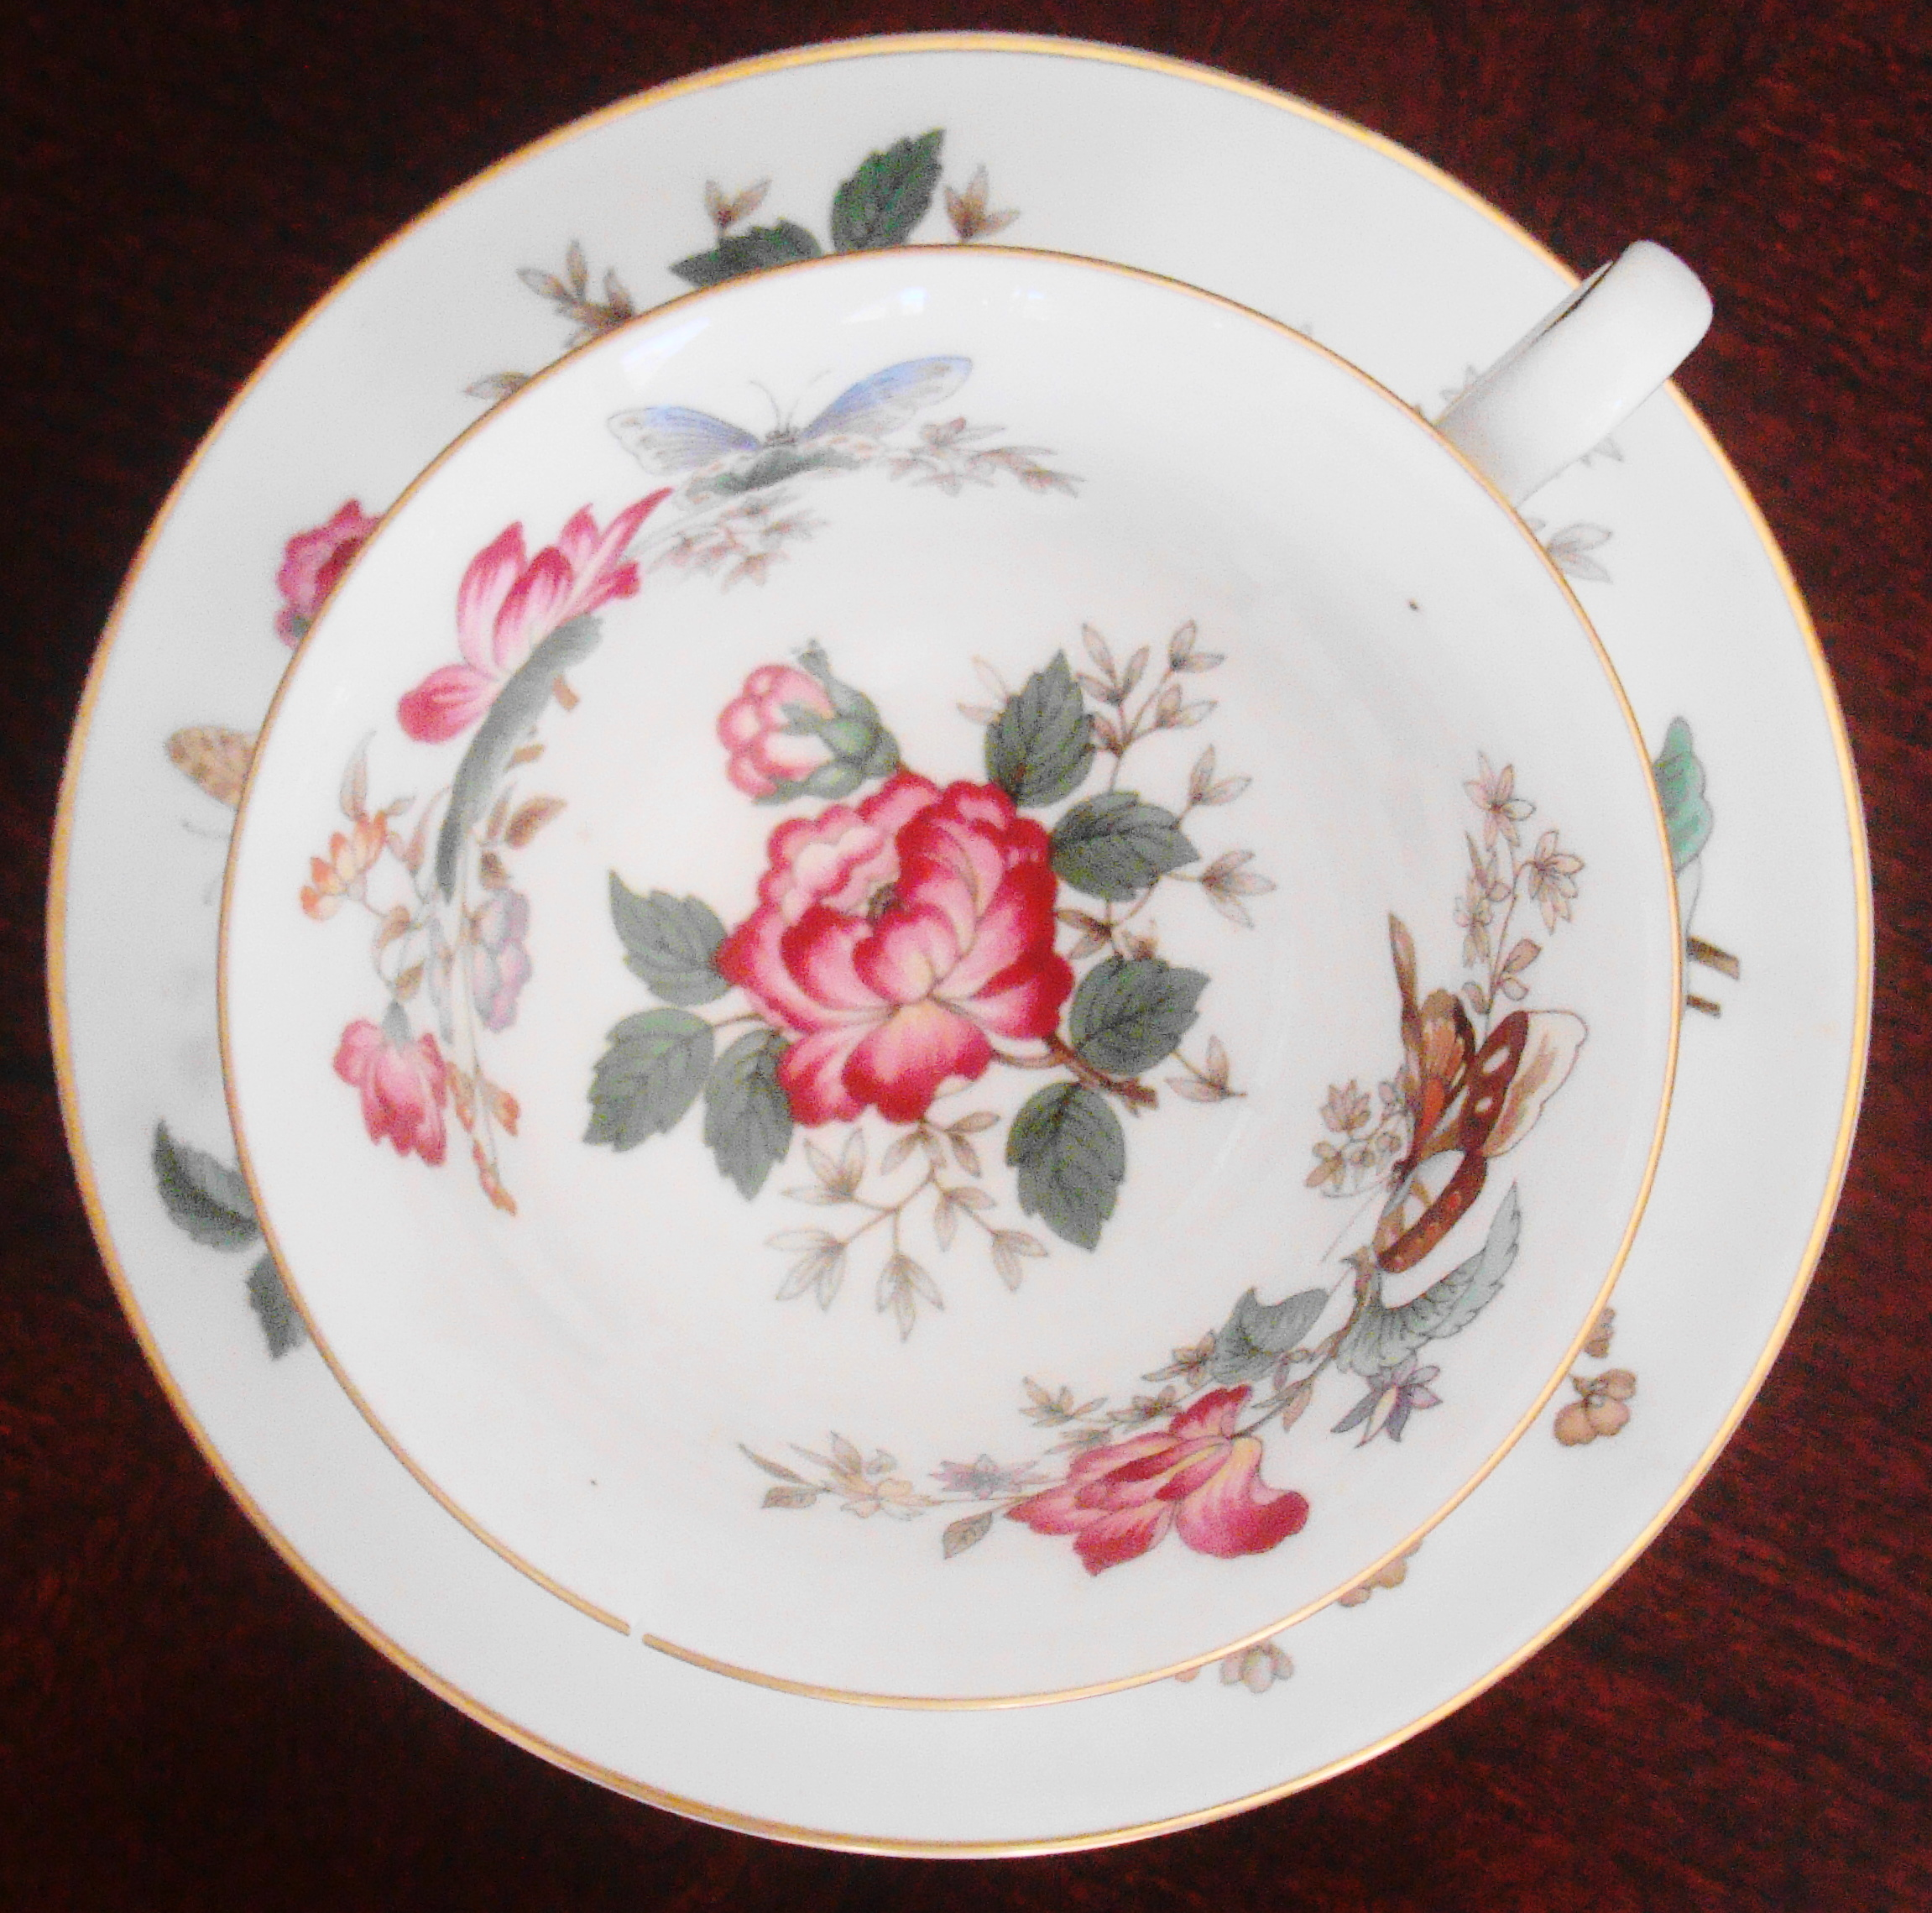 The very-special English teacup.